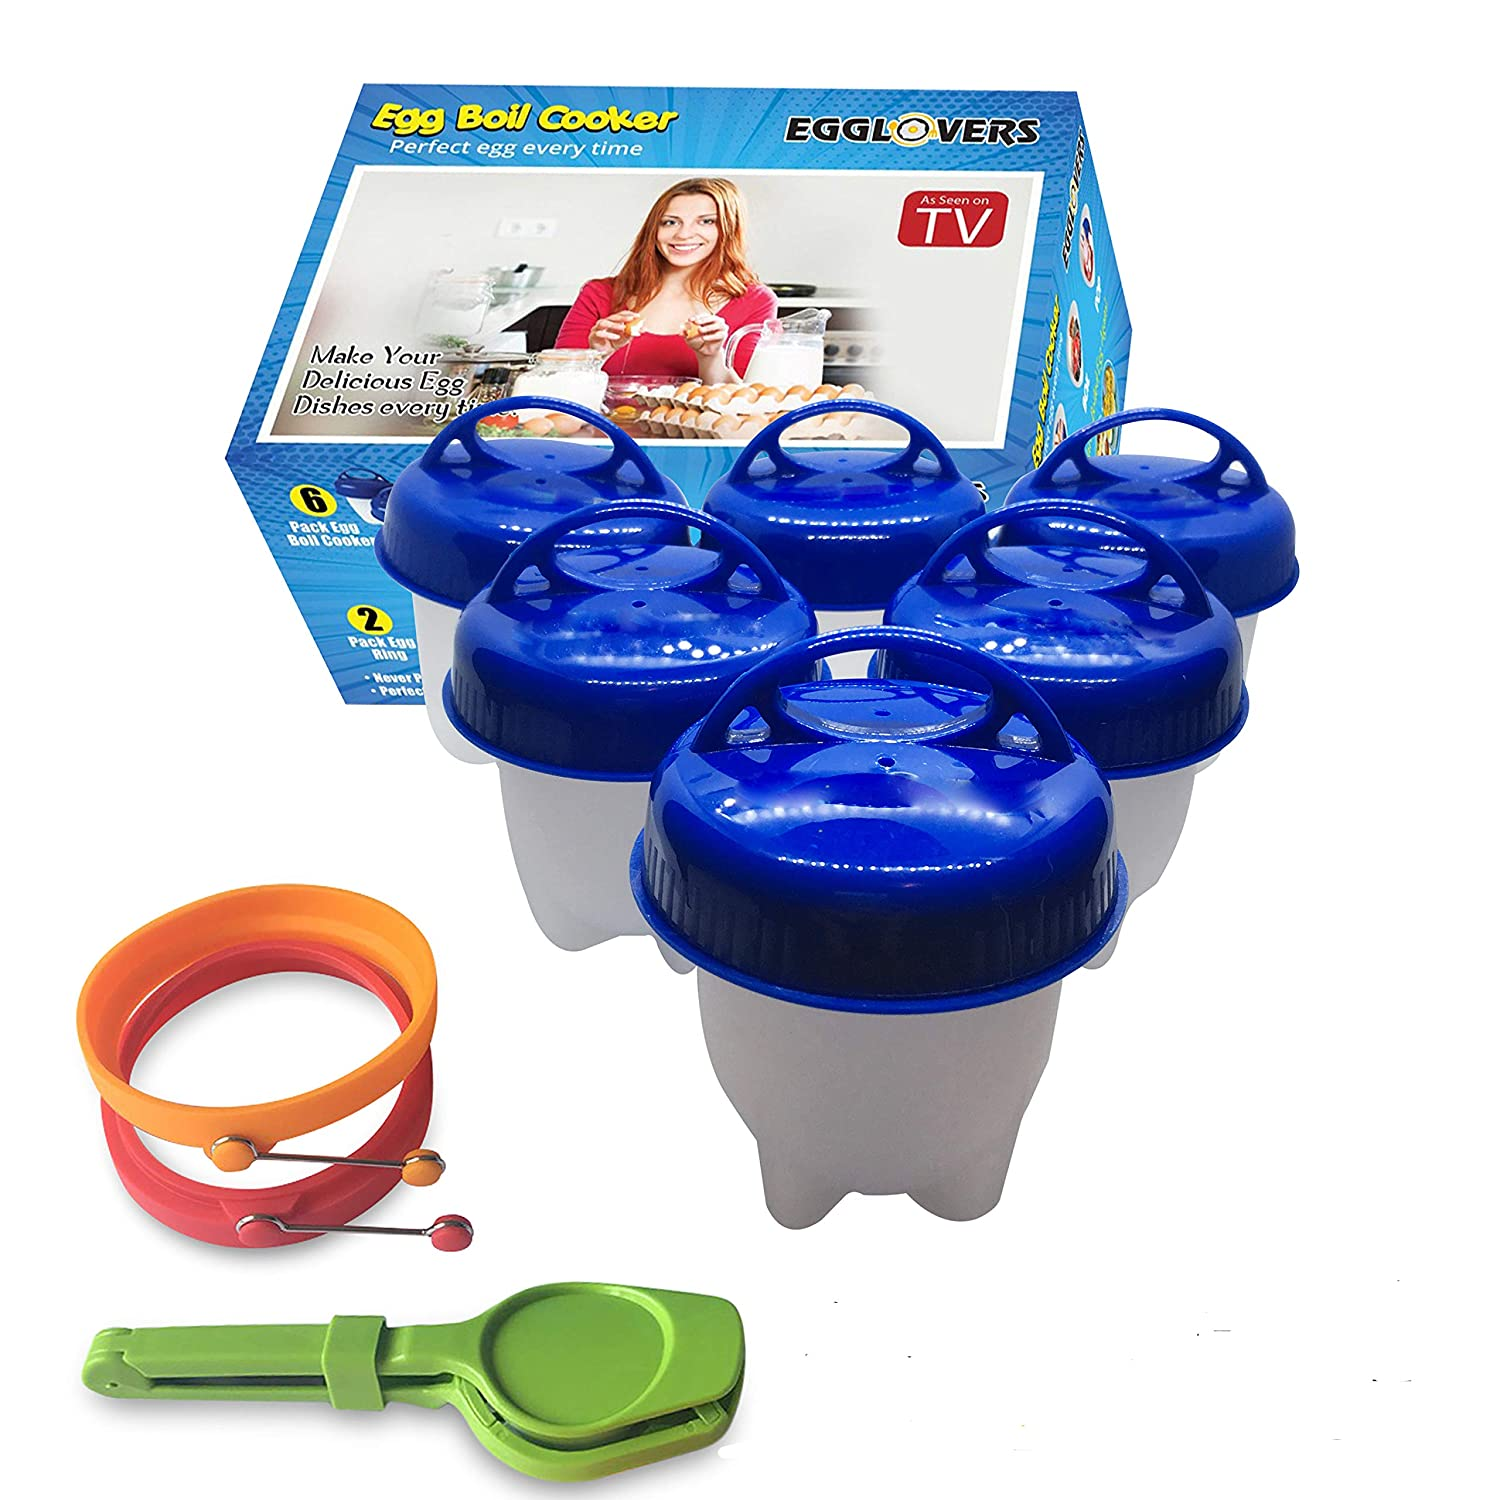 Egglettes Egg Cooker Hard Soft Boiled Eggs Maker Without the Shell, Premium100% Non-Stick Silicone Egg Cups Poacher, AS SEEN ON TV, Bpa-Free No-Toxic (6Pack), FREE Egg Slicer + Egg Rings and E-book Eggslovers